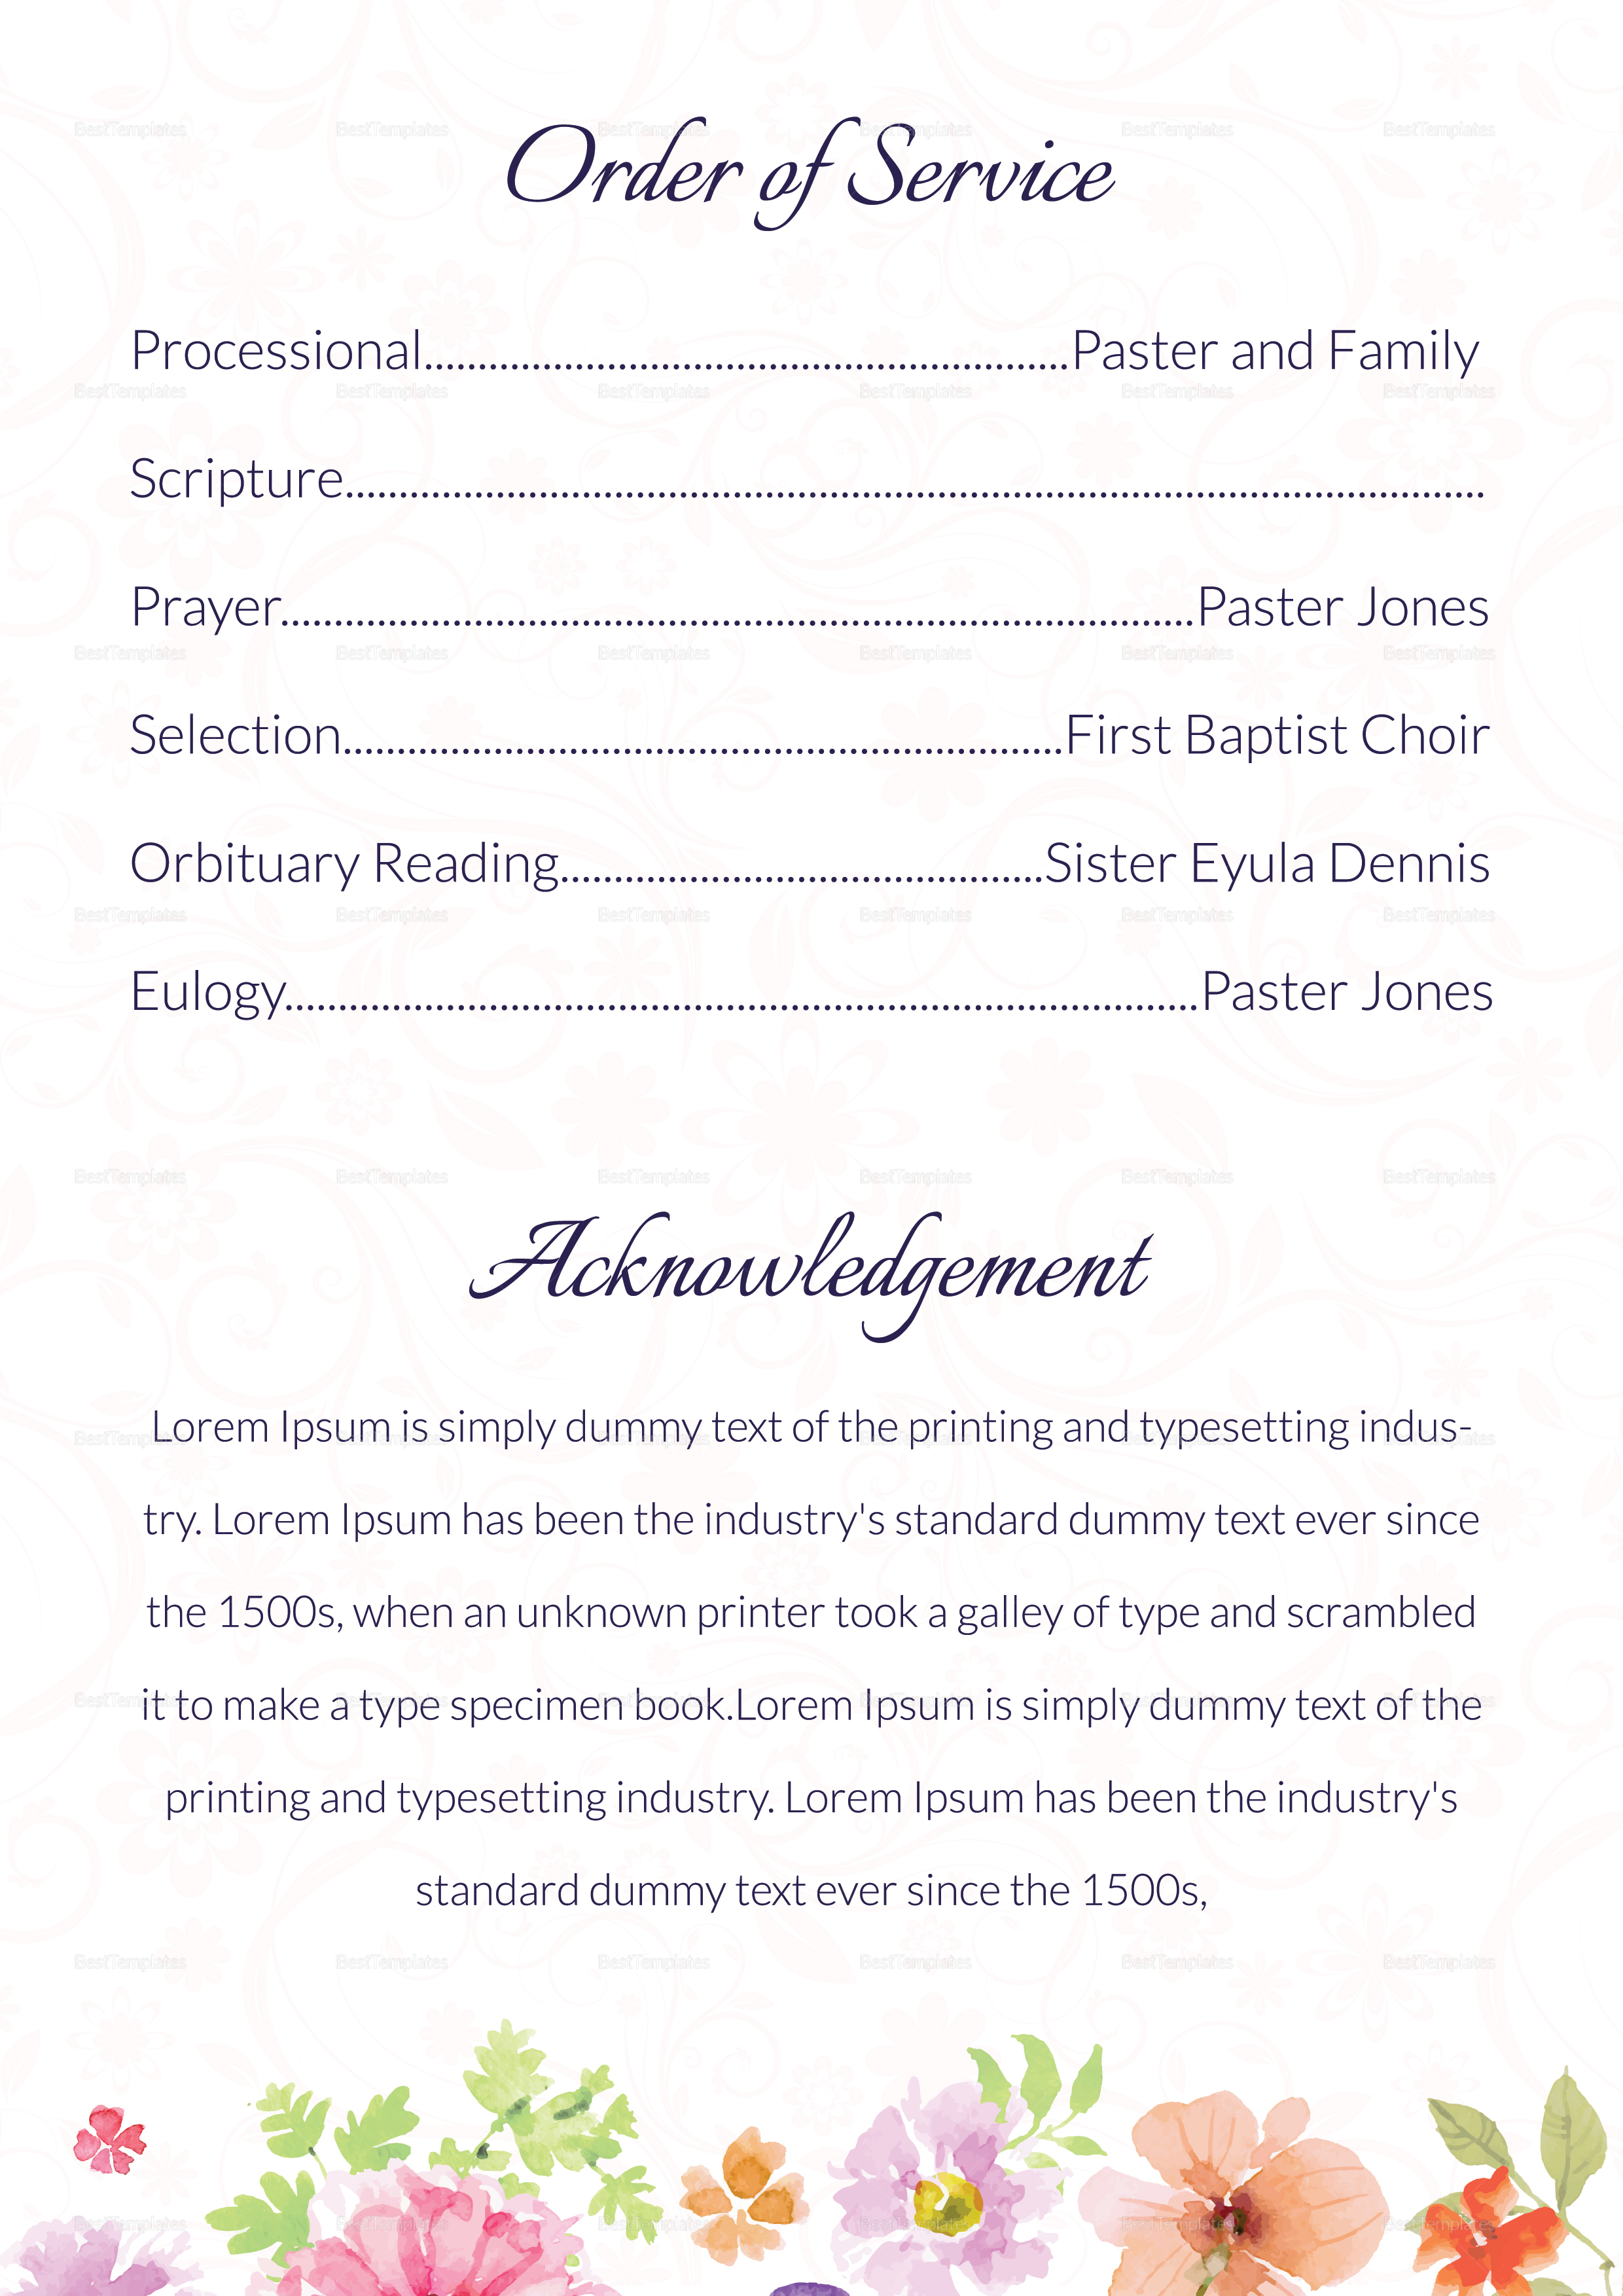 Printable Funeral Order of Service Invitation